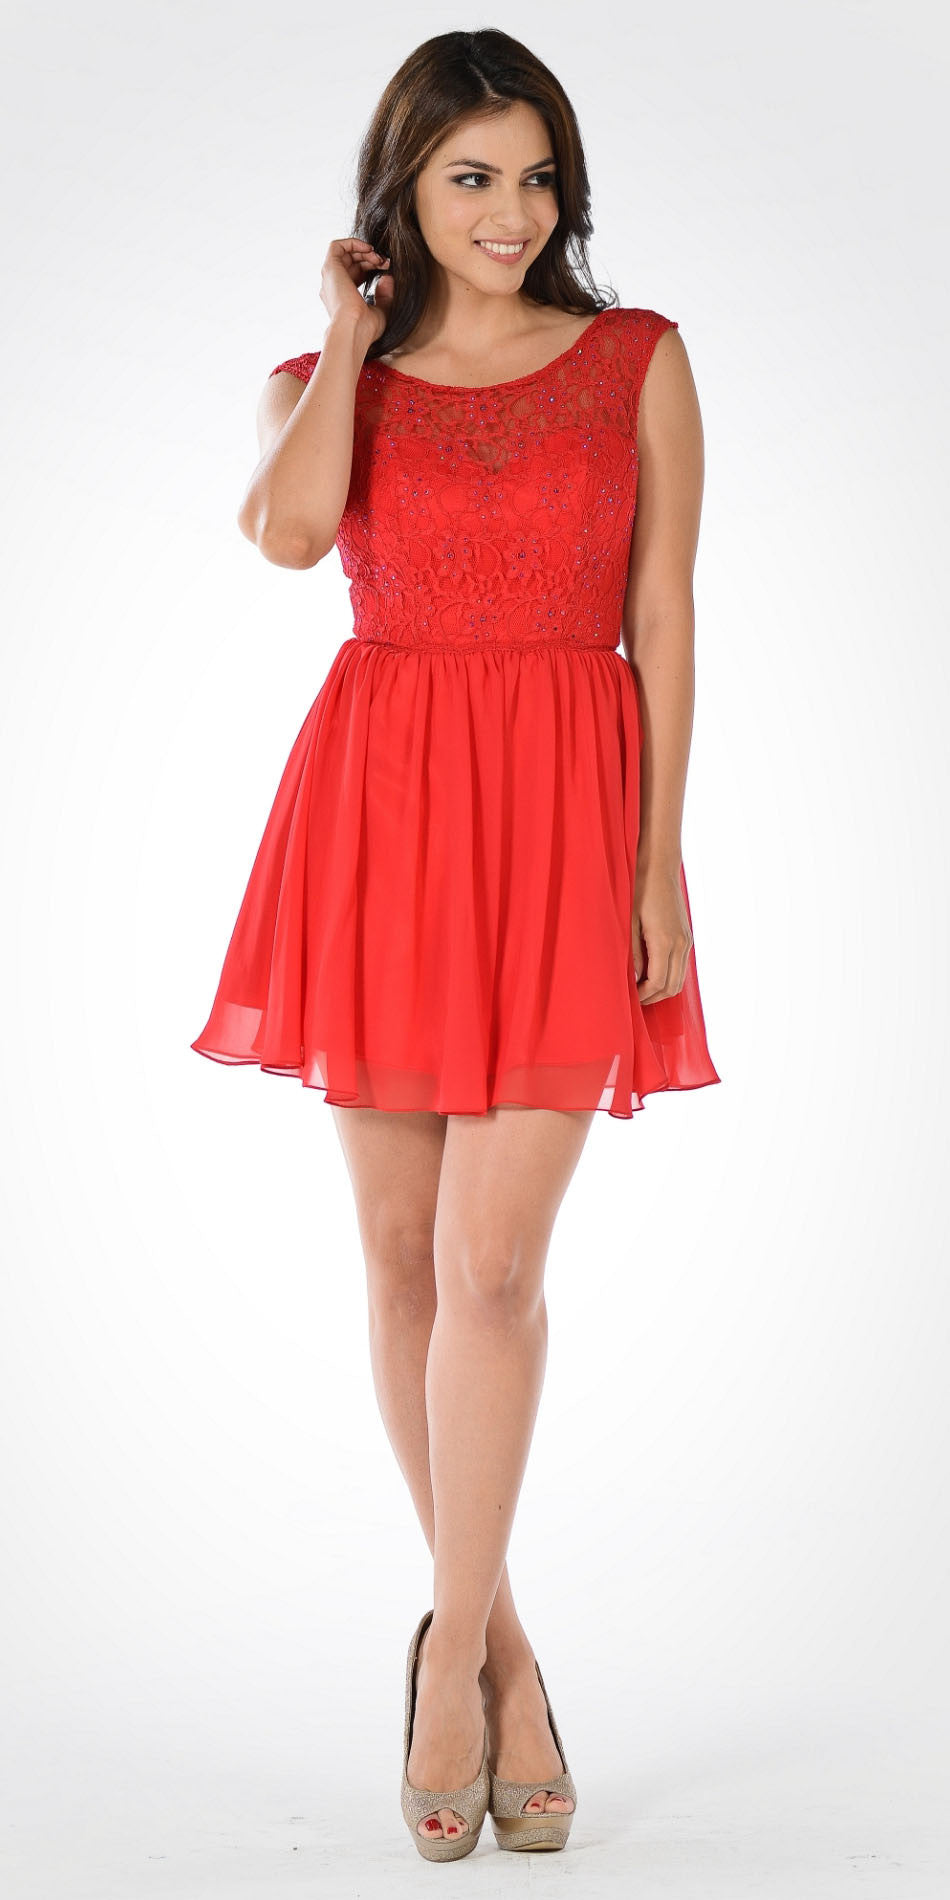 Sleeveless Lace Bodice Scoop Neck Red Cocktail Dress Short